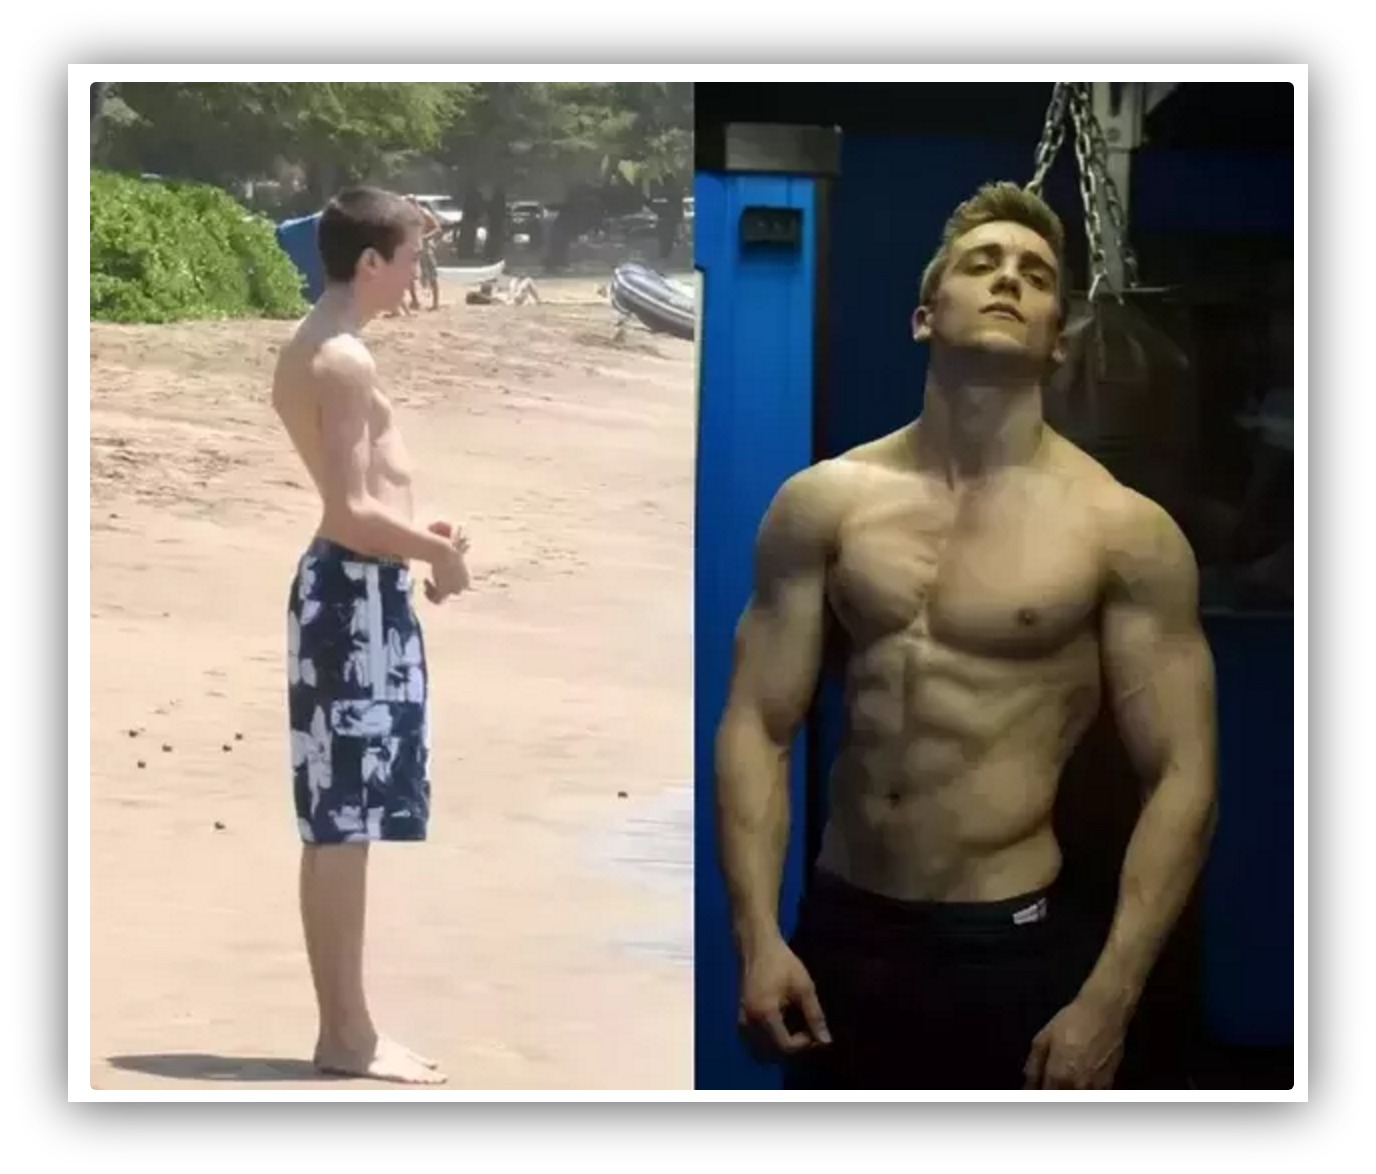 A before-after progress photo showing a man